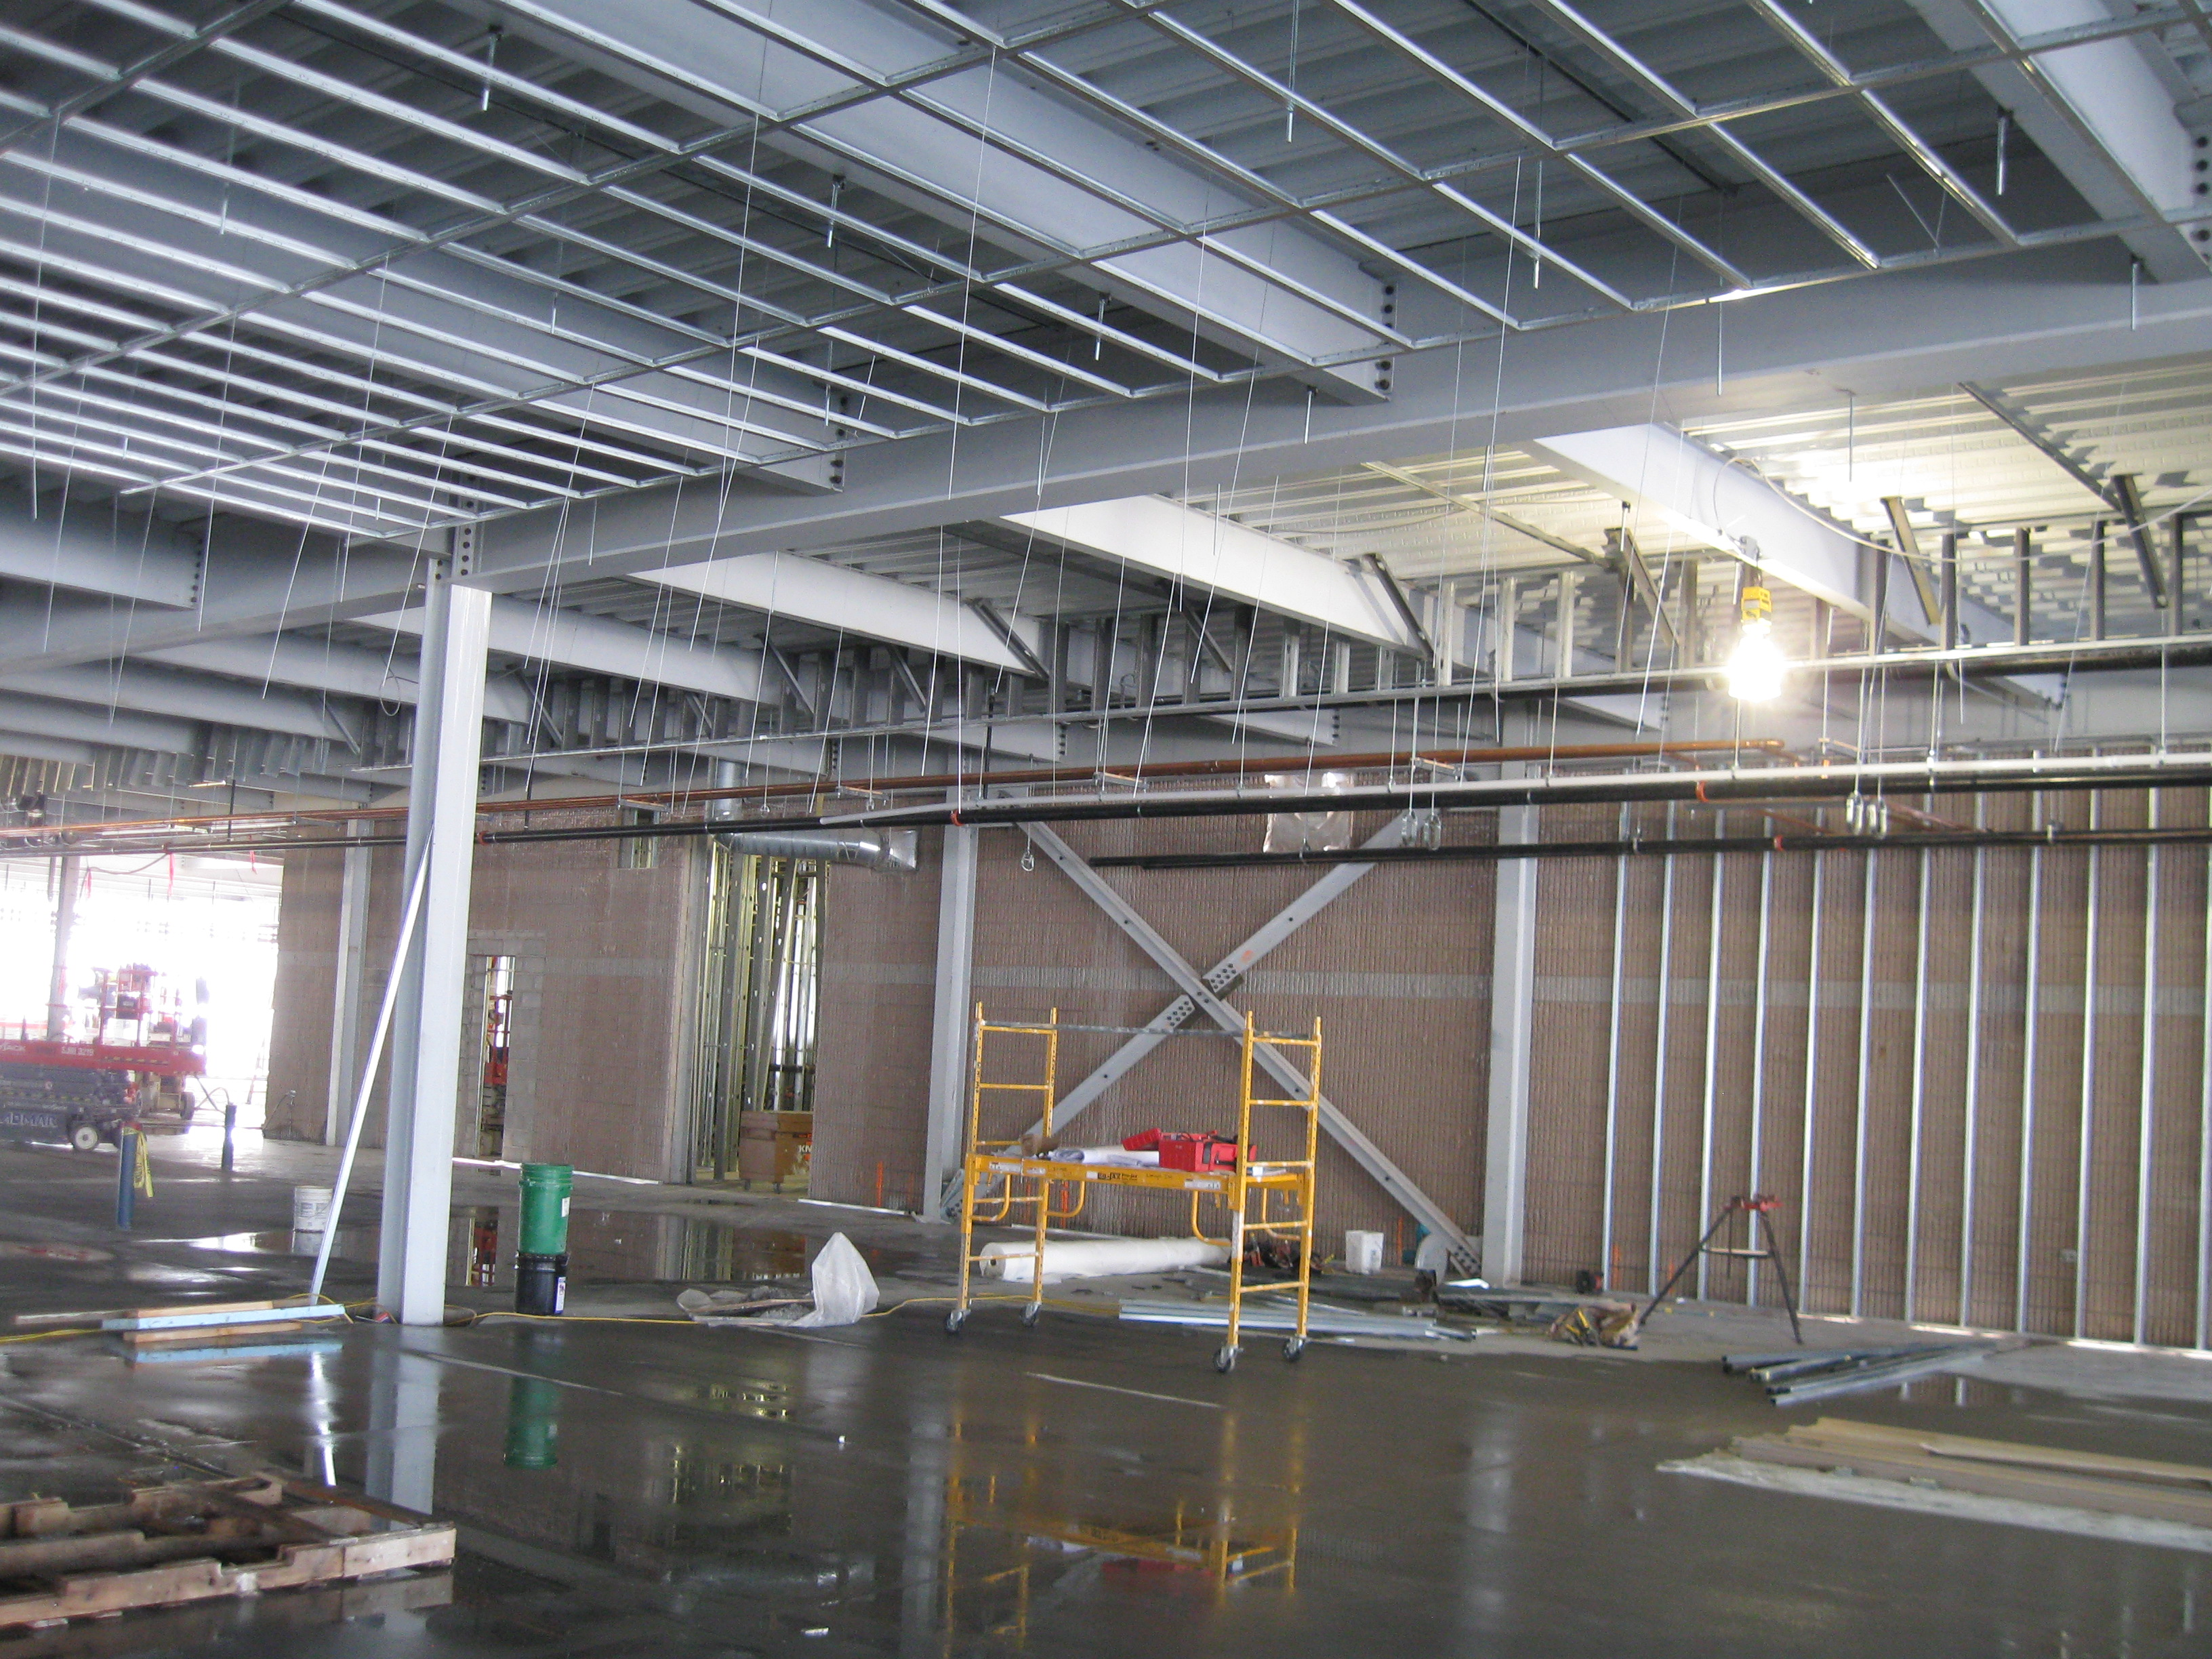 John P. Stopen Inficon Industrial Project interior construction